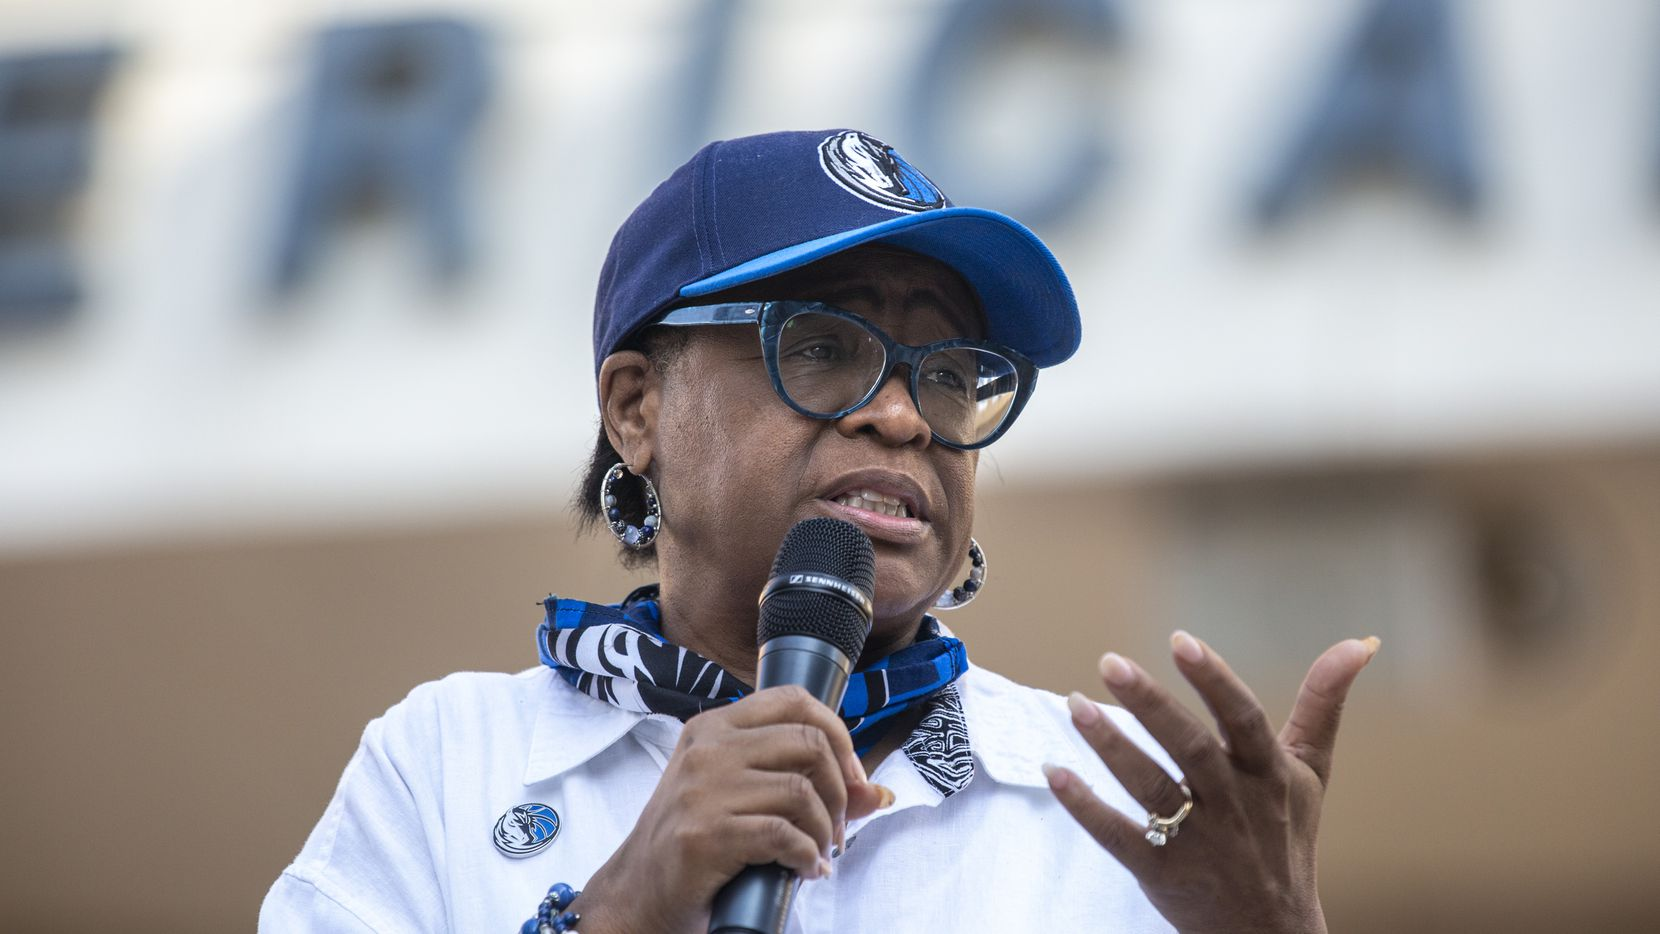 Dallas Mavericks CEO Cynt Marshall welcomes attendees during a Courageous Conversations meet-up to discuss systemic racism at Victory Plaza outside the American Airlines Center in Dallas on Tuesday, June 9, 2020. Marshall hosted the event with all team employees, including players and coaches, to discuss systemic racism and disparities facing the African-American community.